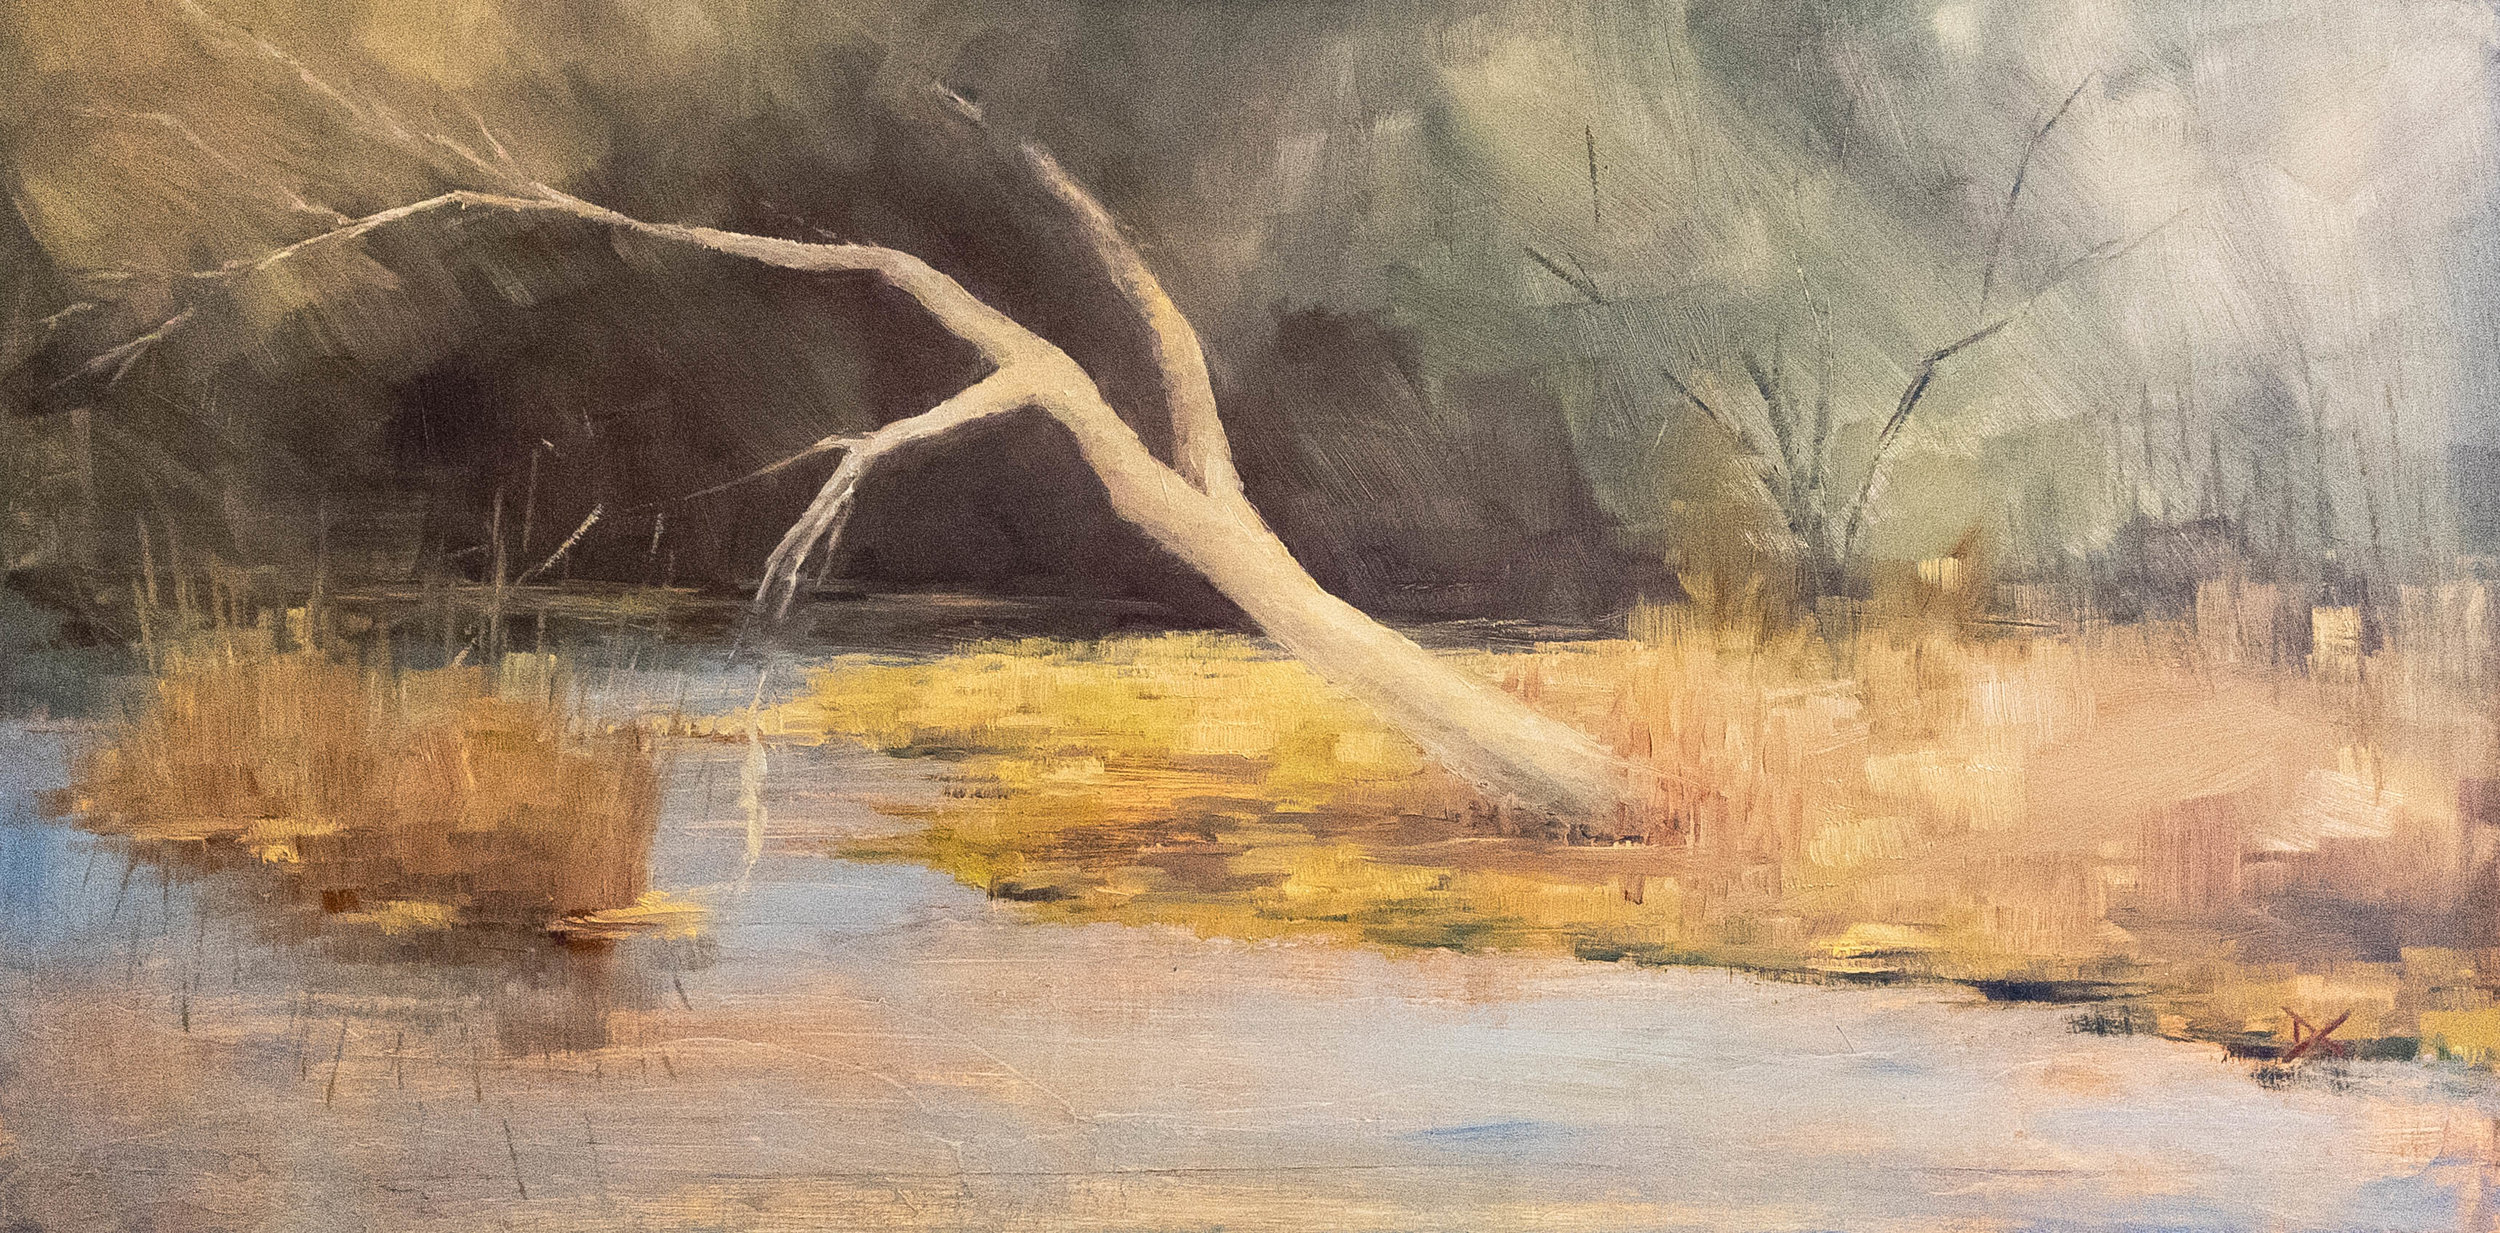 The Bleached Tree.  Brandywine River, Pennsylvania.  Oil on panel, 12 by 24 inches.